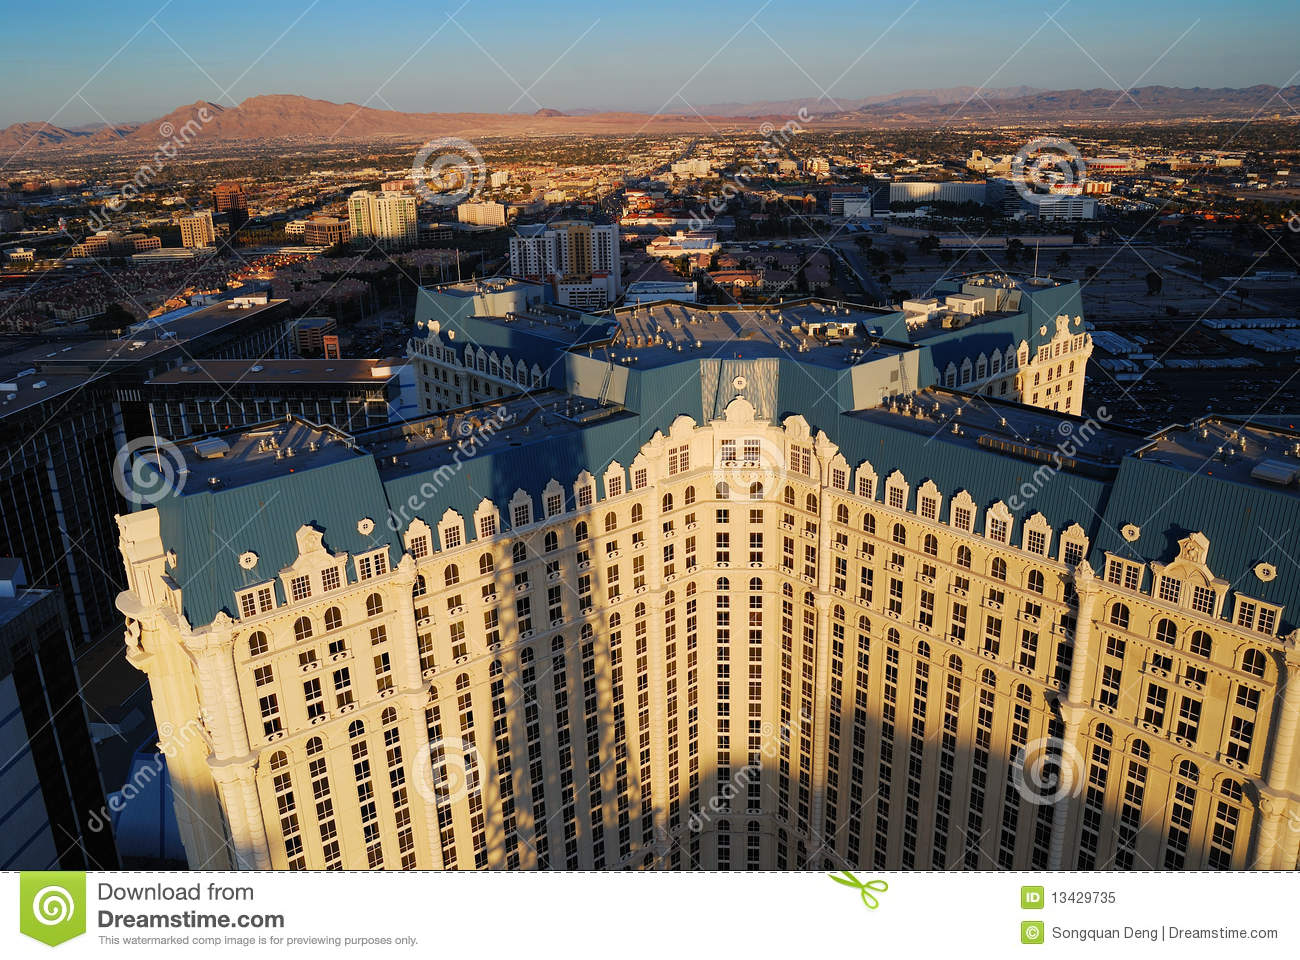 Who Owns The Four Seasons Hotel In Las Vegas